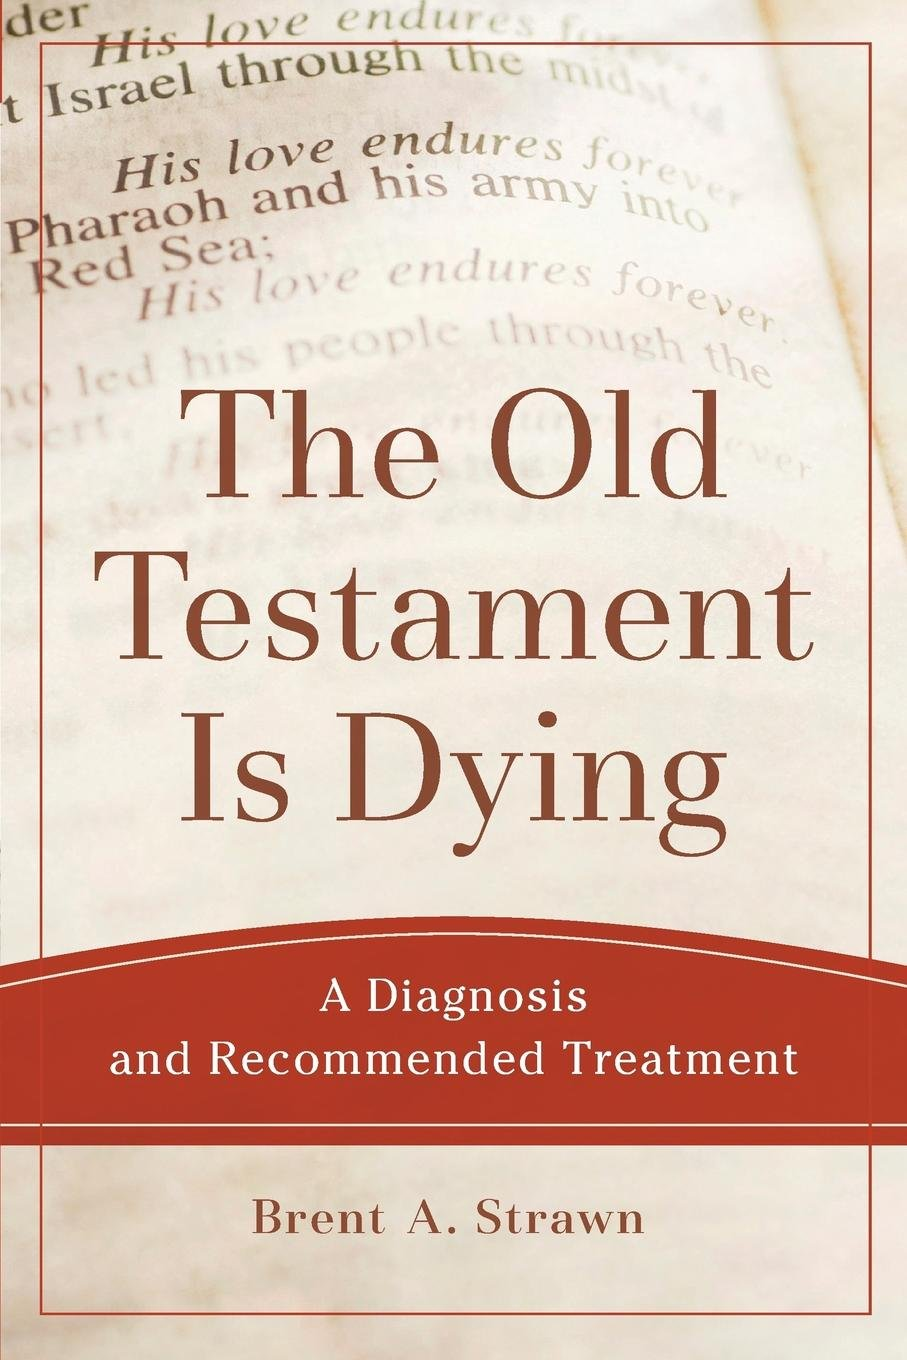 Book_The Old Testament Is Dying.jpg